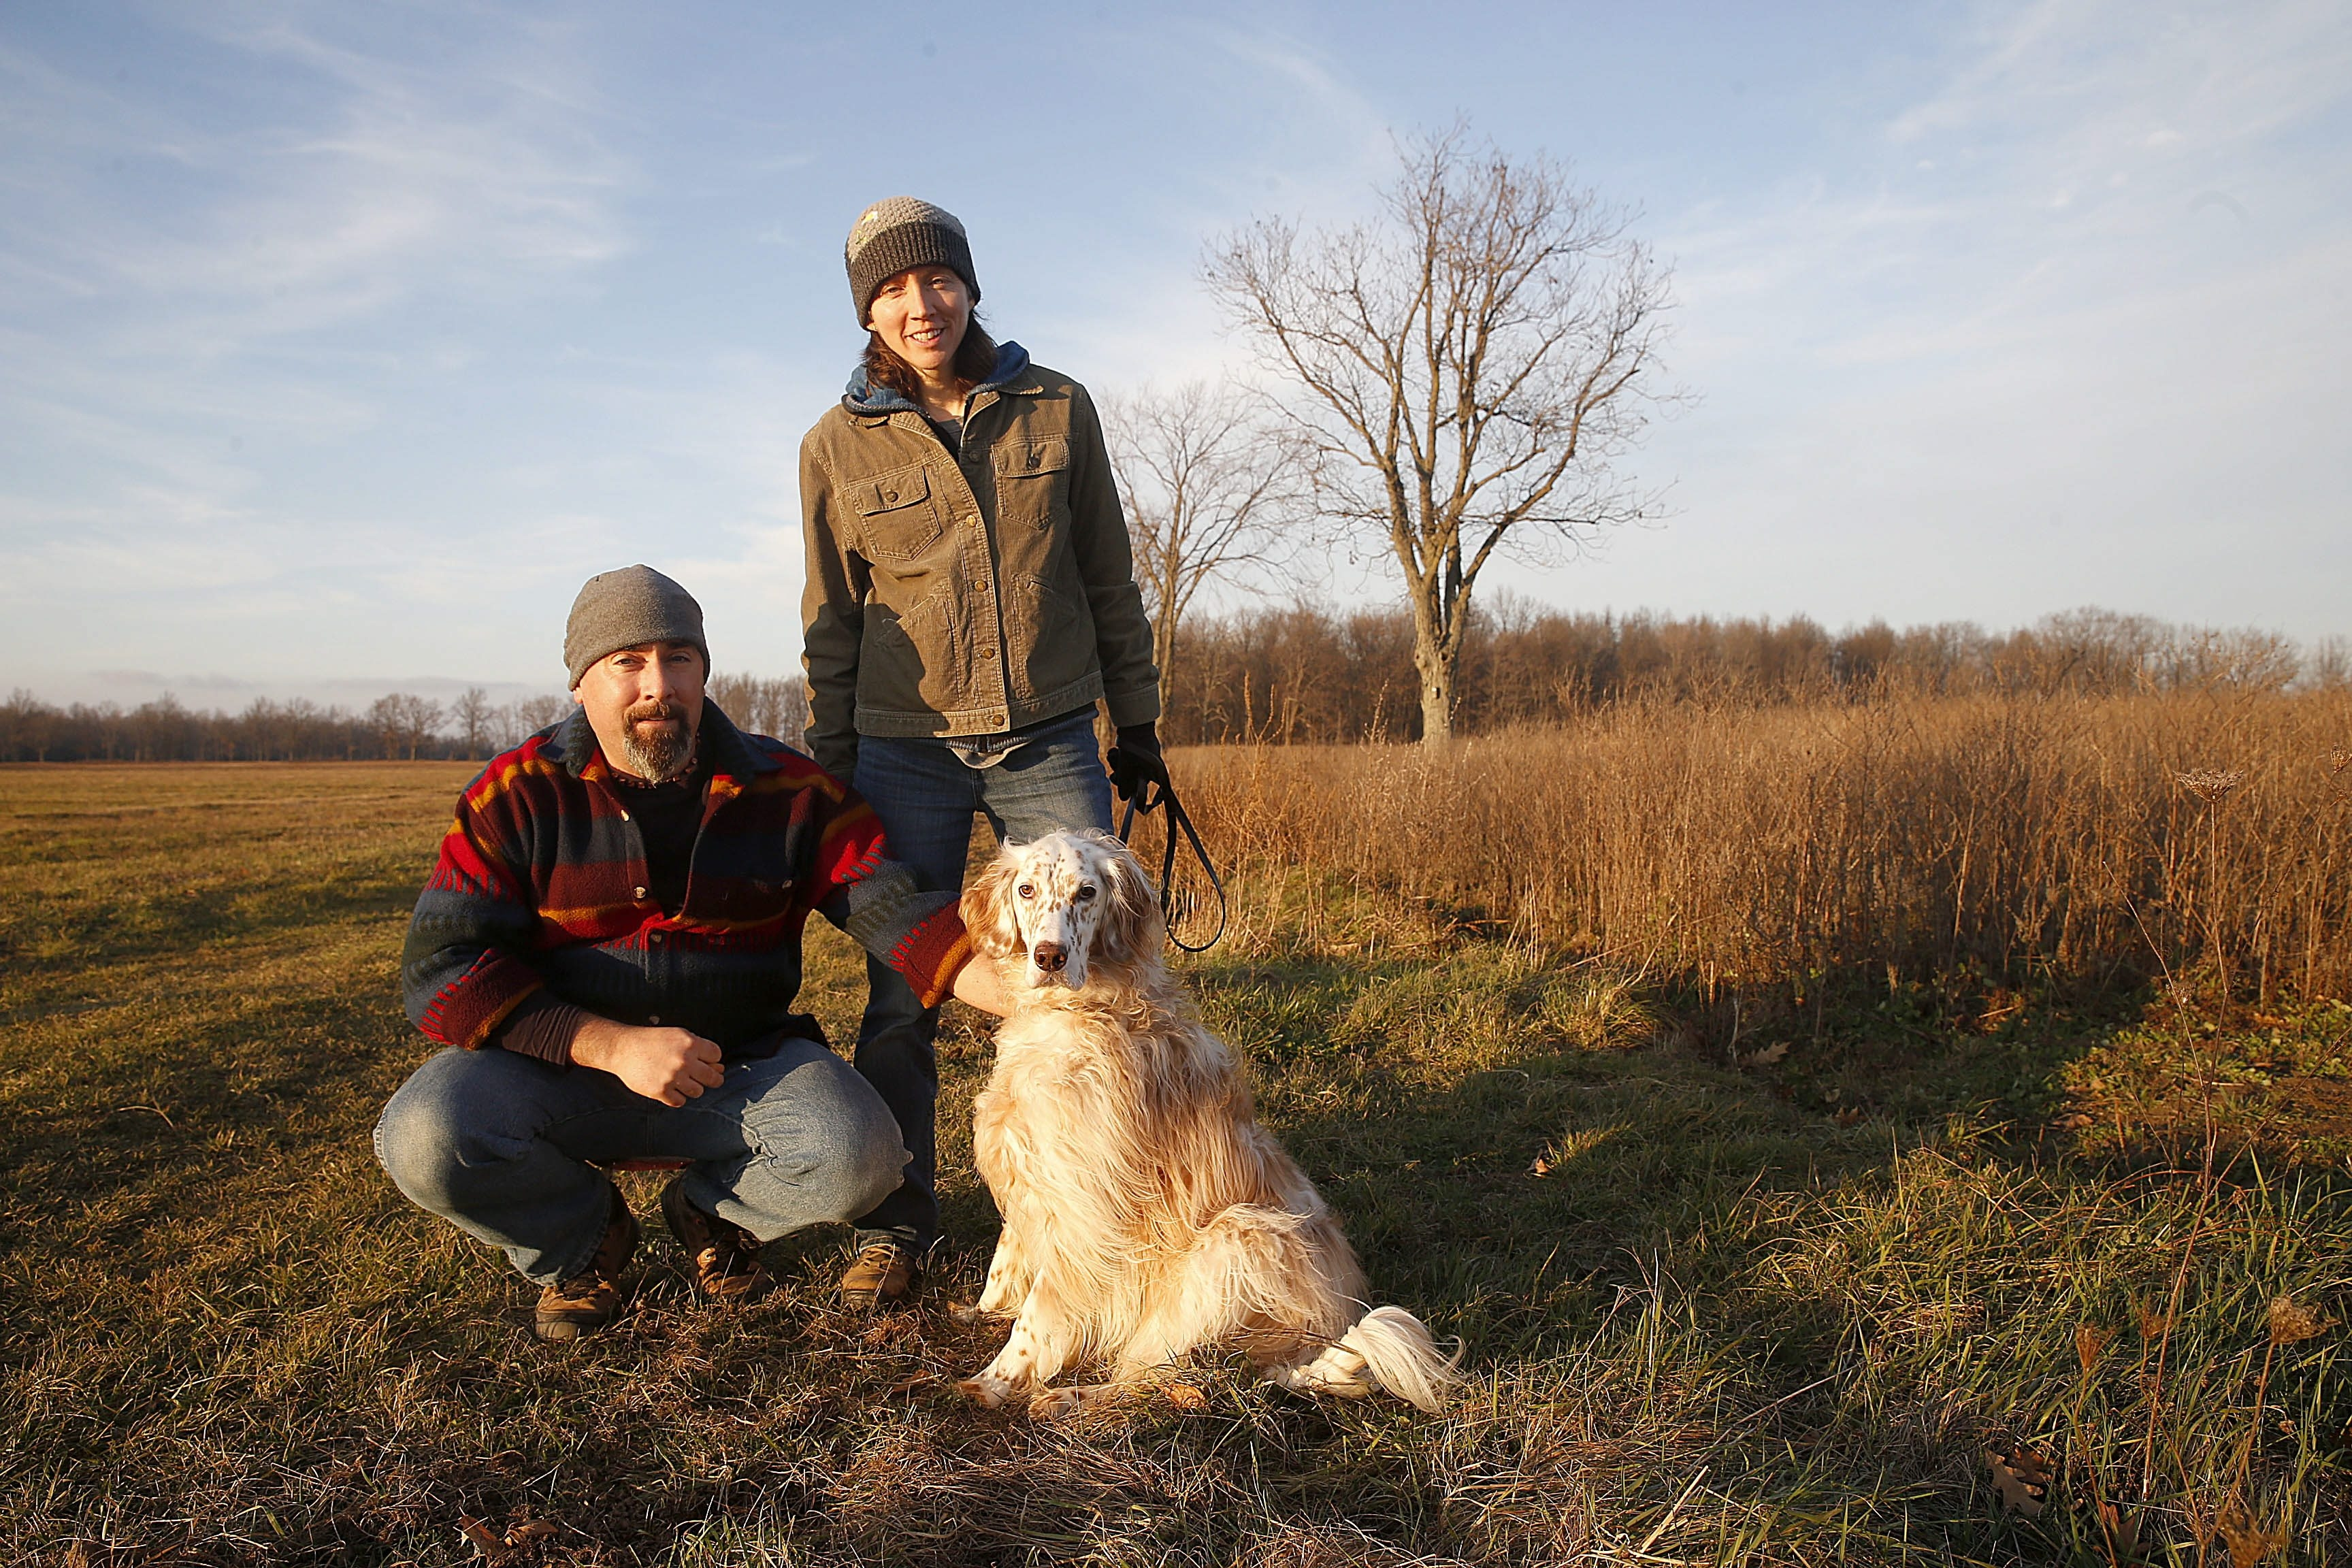 When Nicole Gerber and David Reilly found traps on public land near their property, they moved to stop the activity on Grand Island. Their efforts resulted in a trapping ban on town land on George Alt Boulevard.